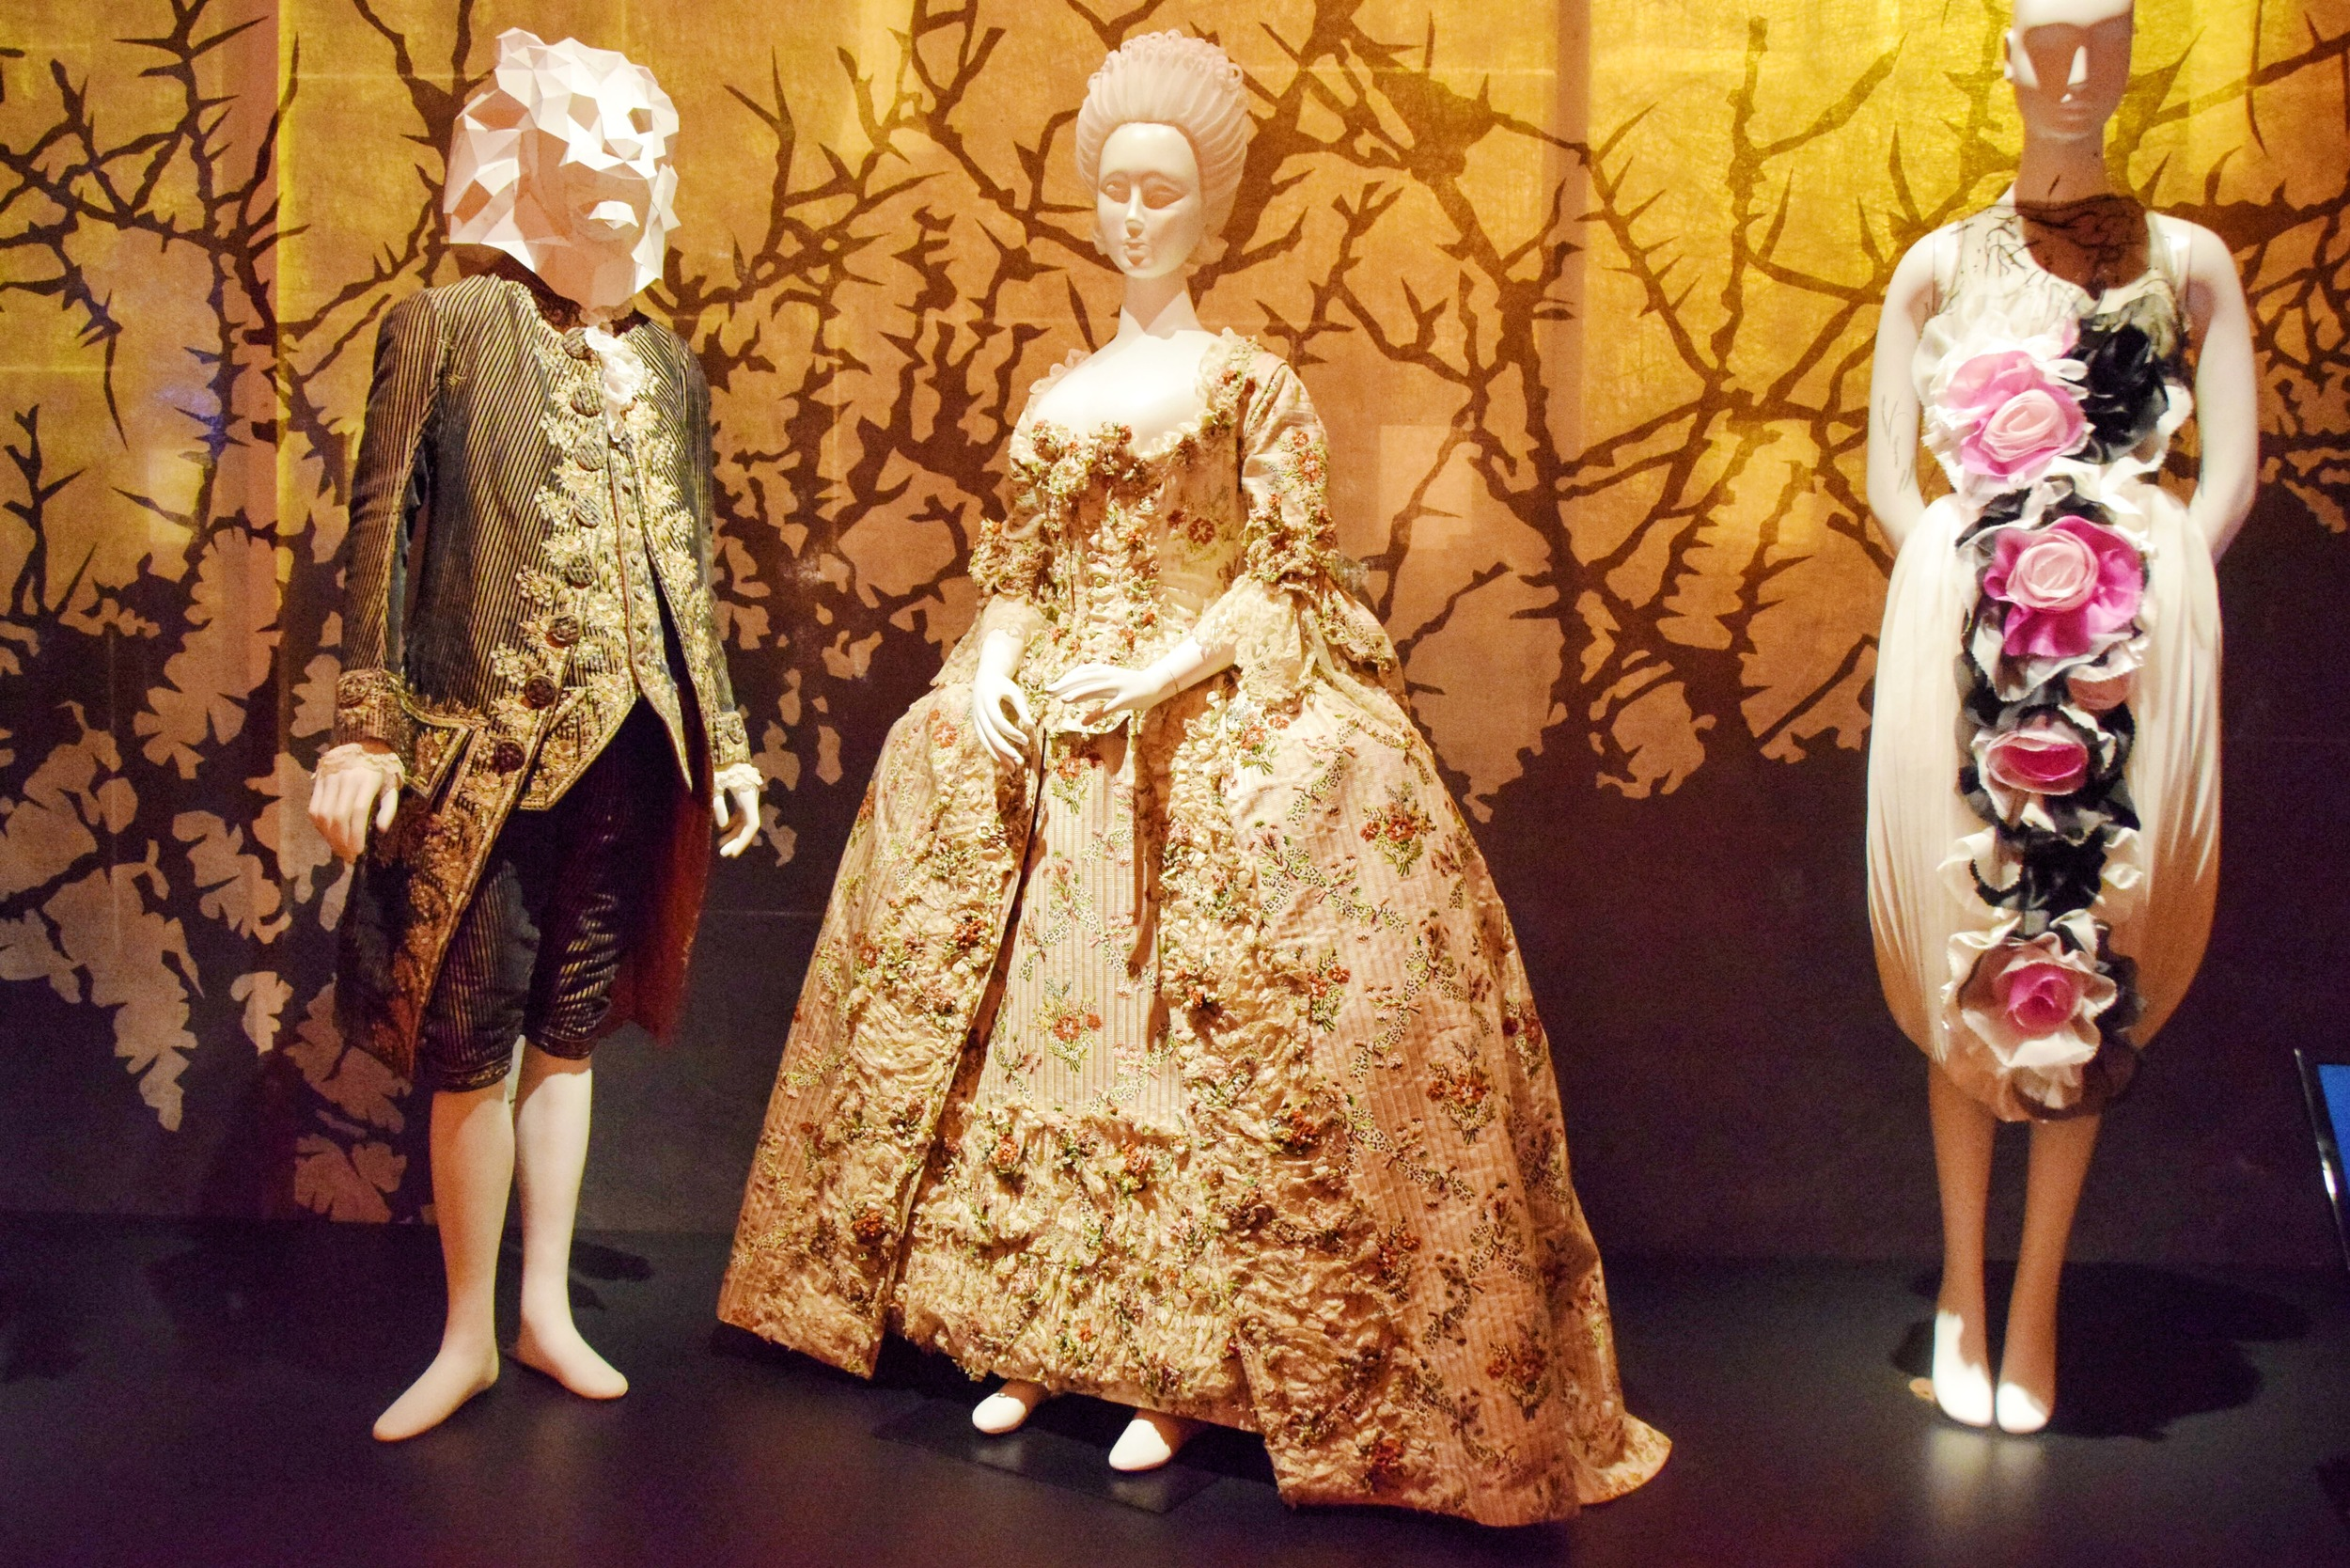 From L to R: unknown, Court dress (1755), Rodarte (2007)